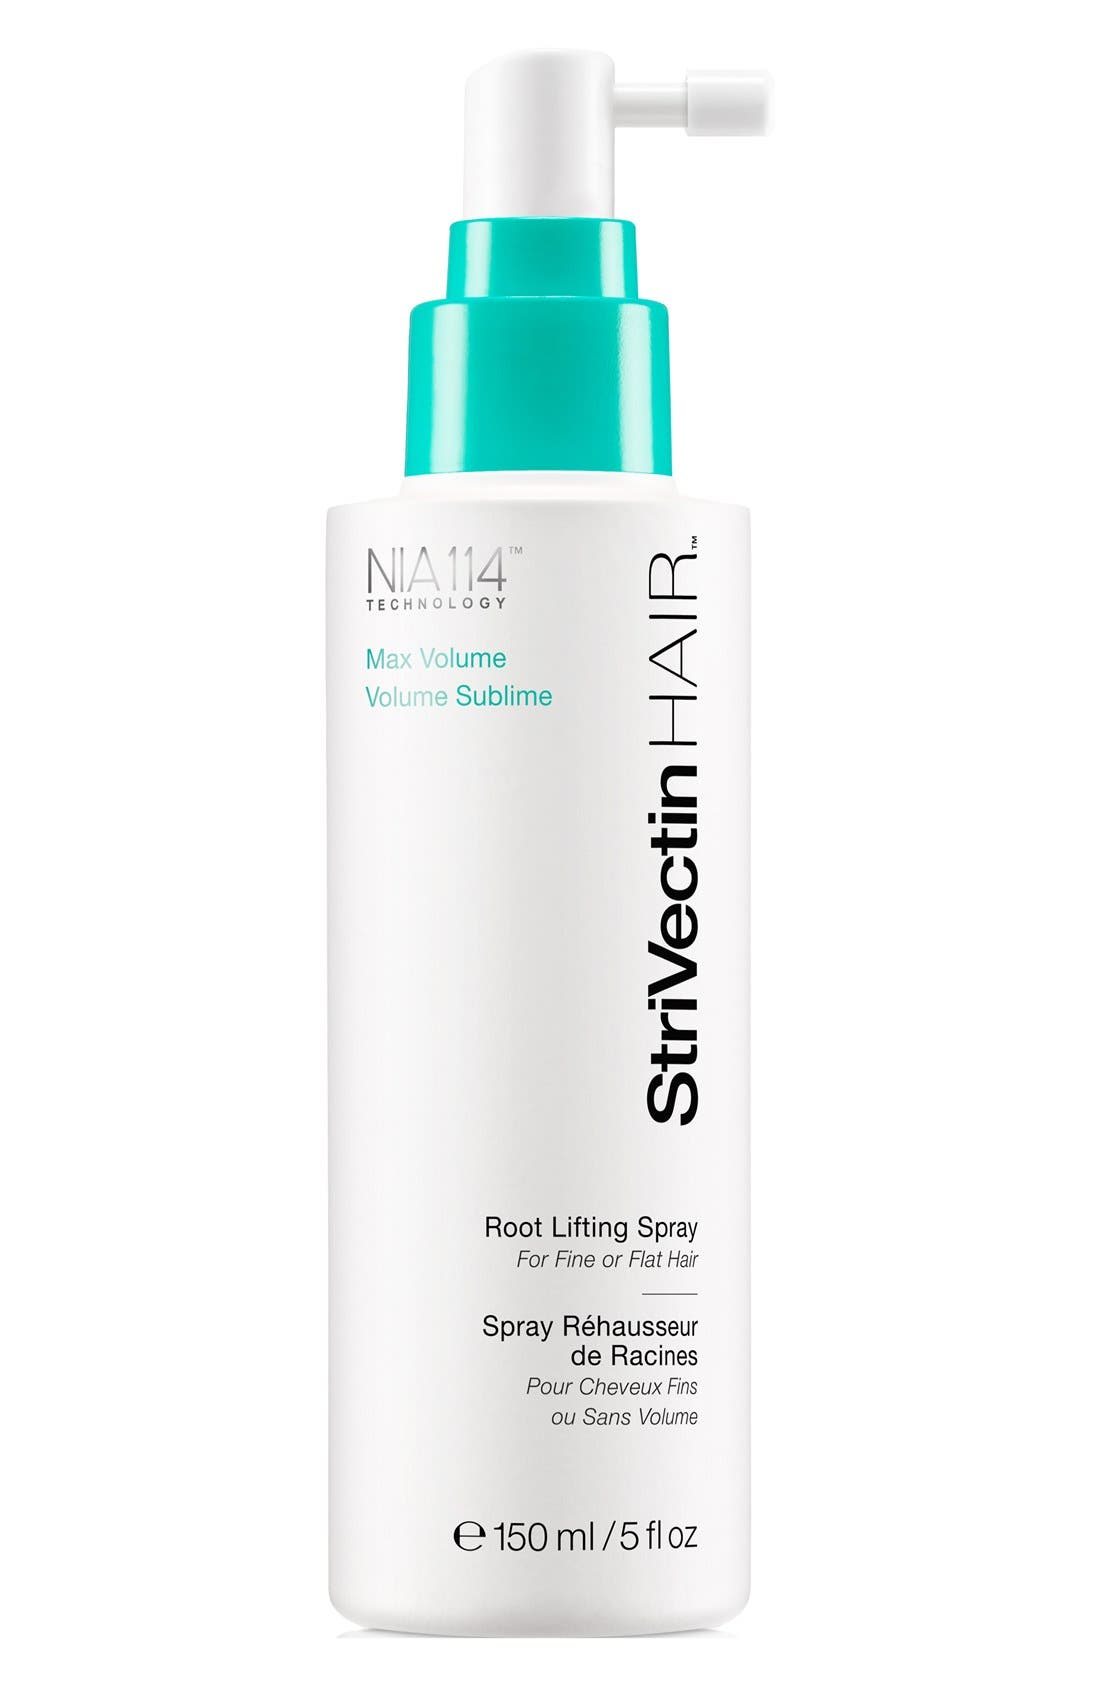 StriVectinHAIR™ 'Max Volume' Root Lifting Spray for Flat or Fine Hair